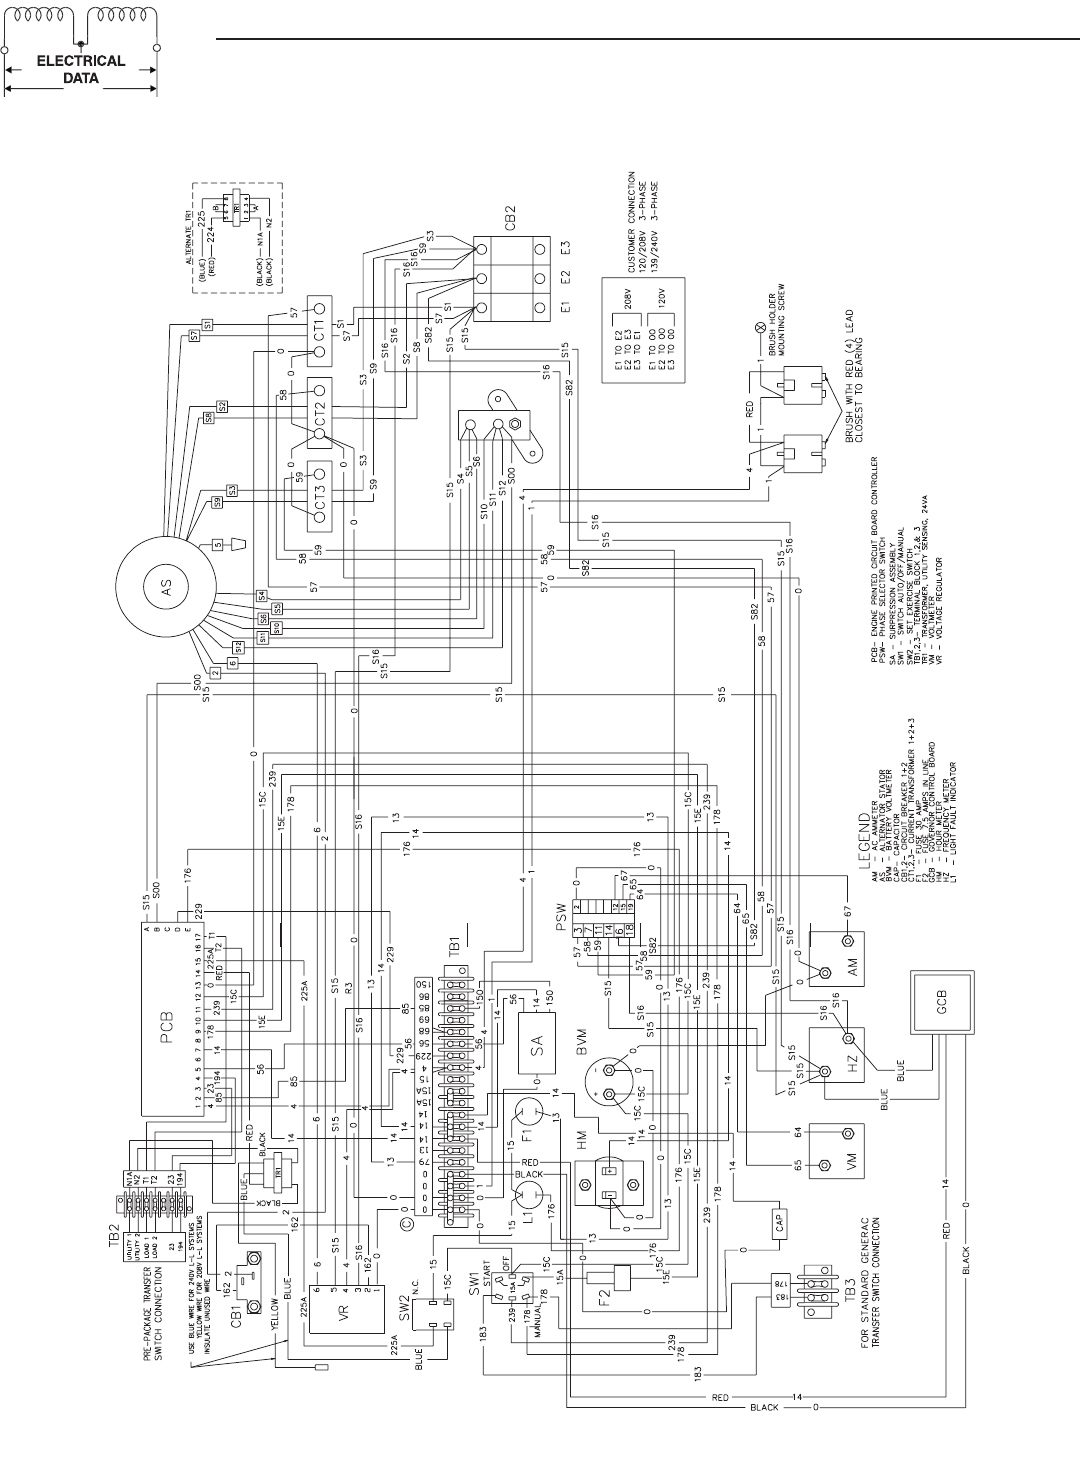 Wiring Diagram Furthermore Generac Transfer Switch Generac